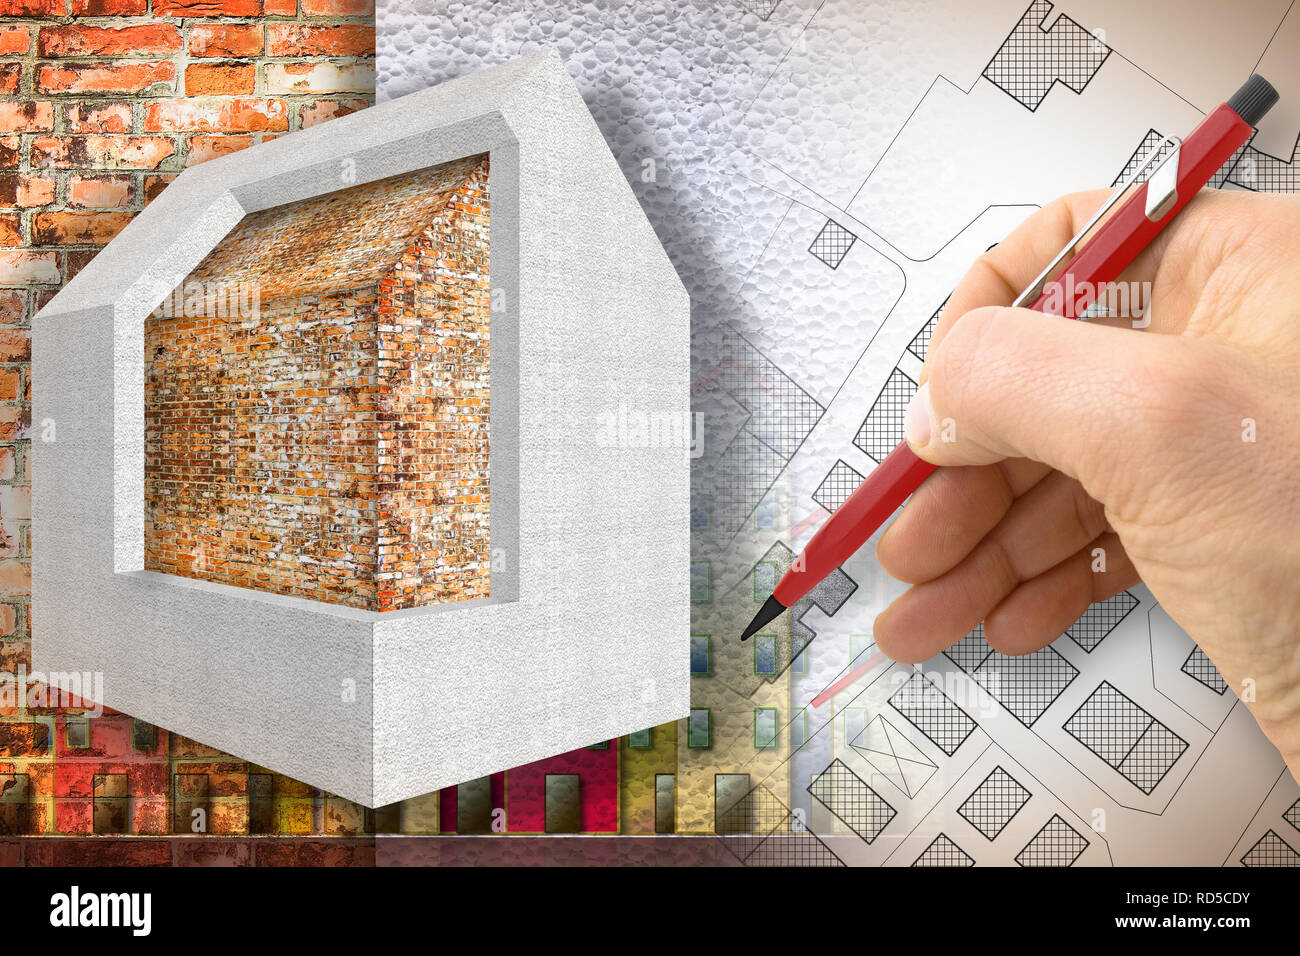 Thermal insulation design of old buildings to improve energy efficiency and reduce thermal losses - 3D render concept image - Stock Image